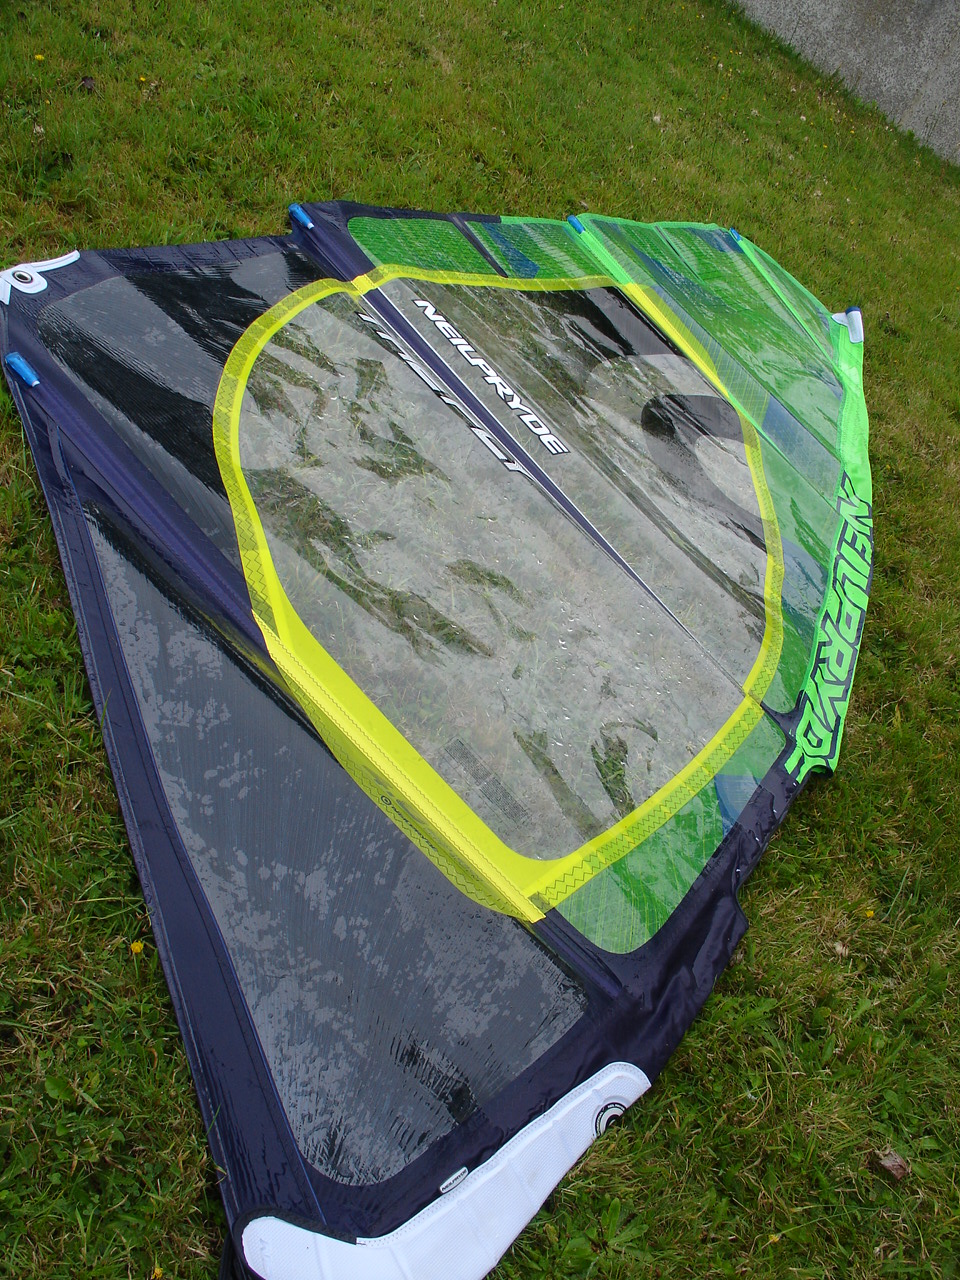 vds voile neil pryde THE FLY 4,8